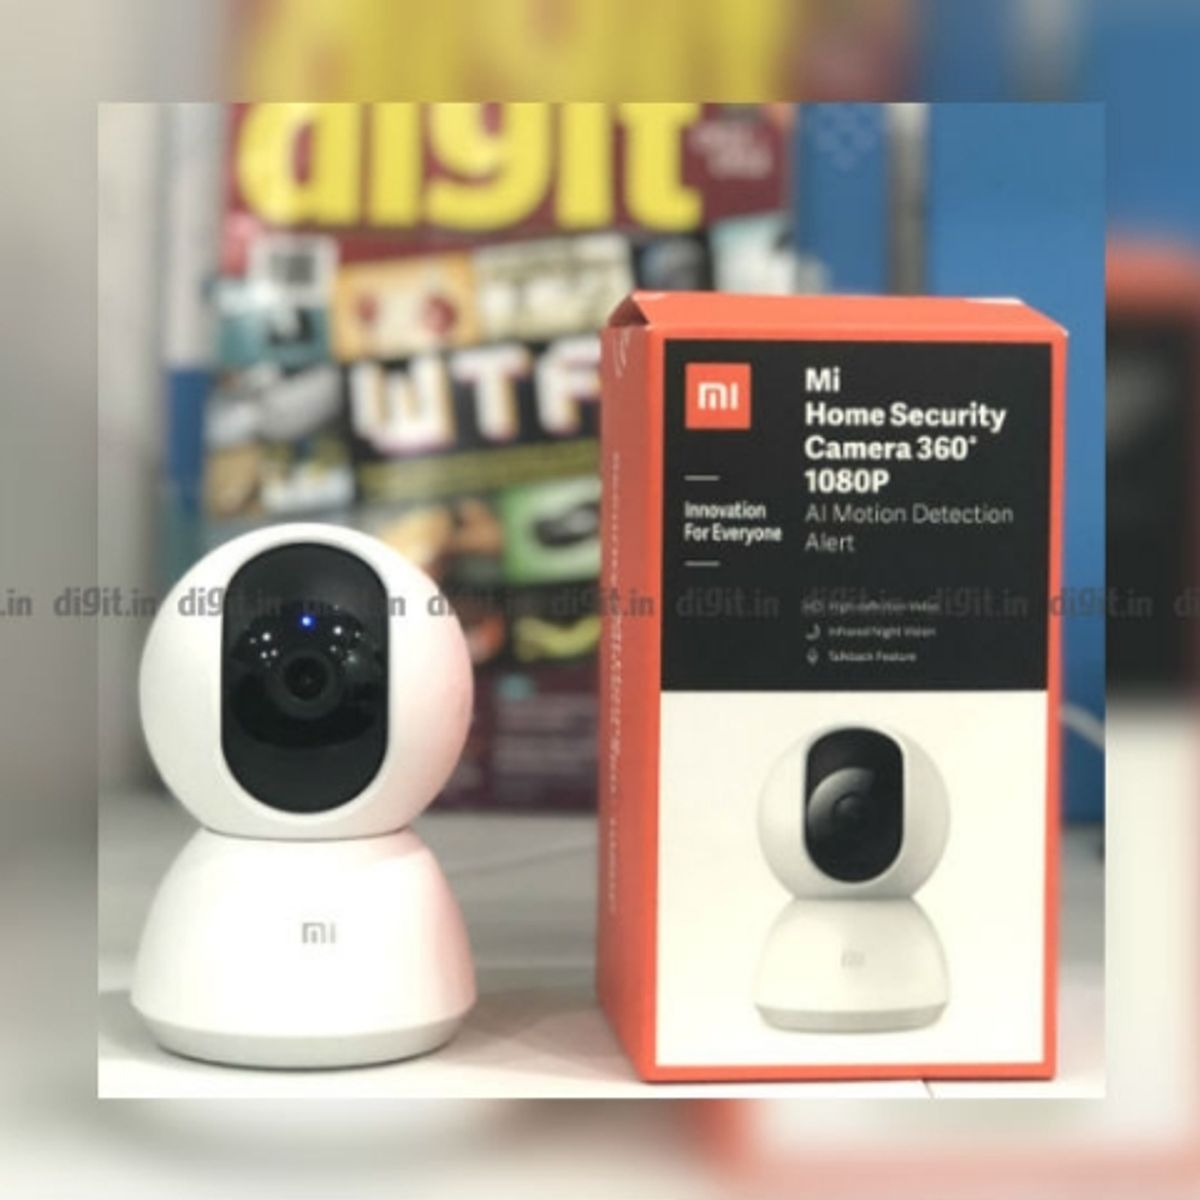 Xiaomi Mi Home Security Camera 360 review: An effective home